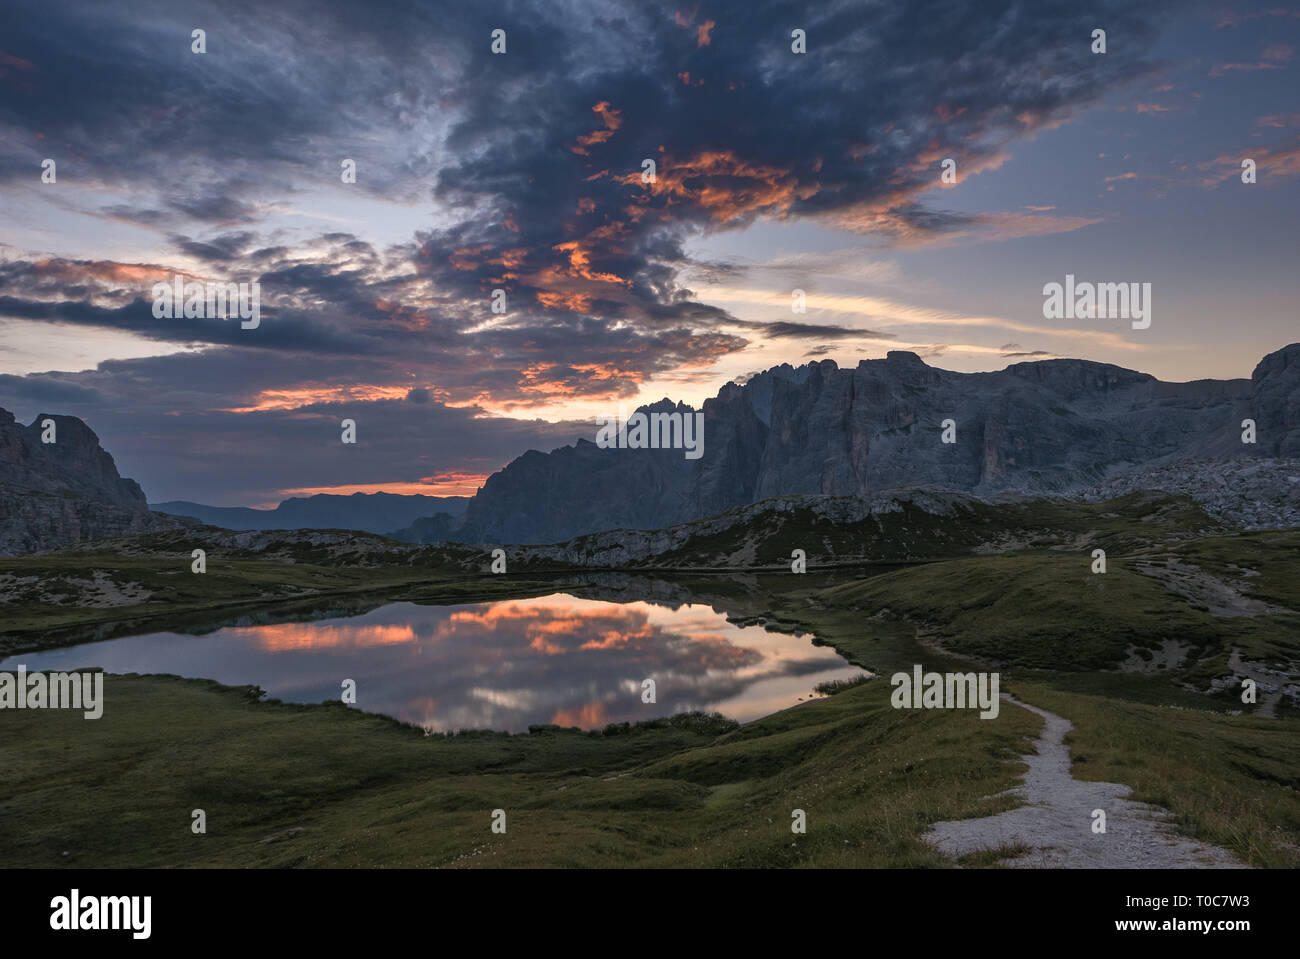 Forces of nature, mountain path and pristine alpine lake - Stock Image